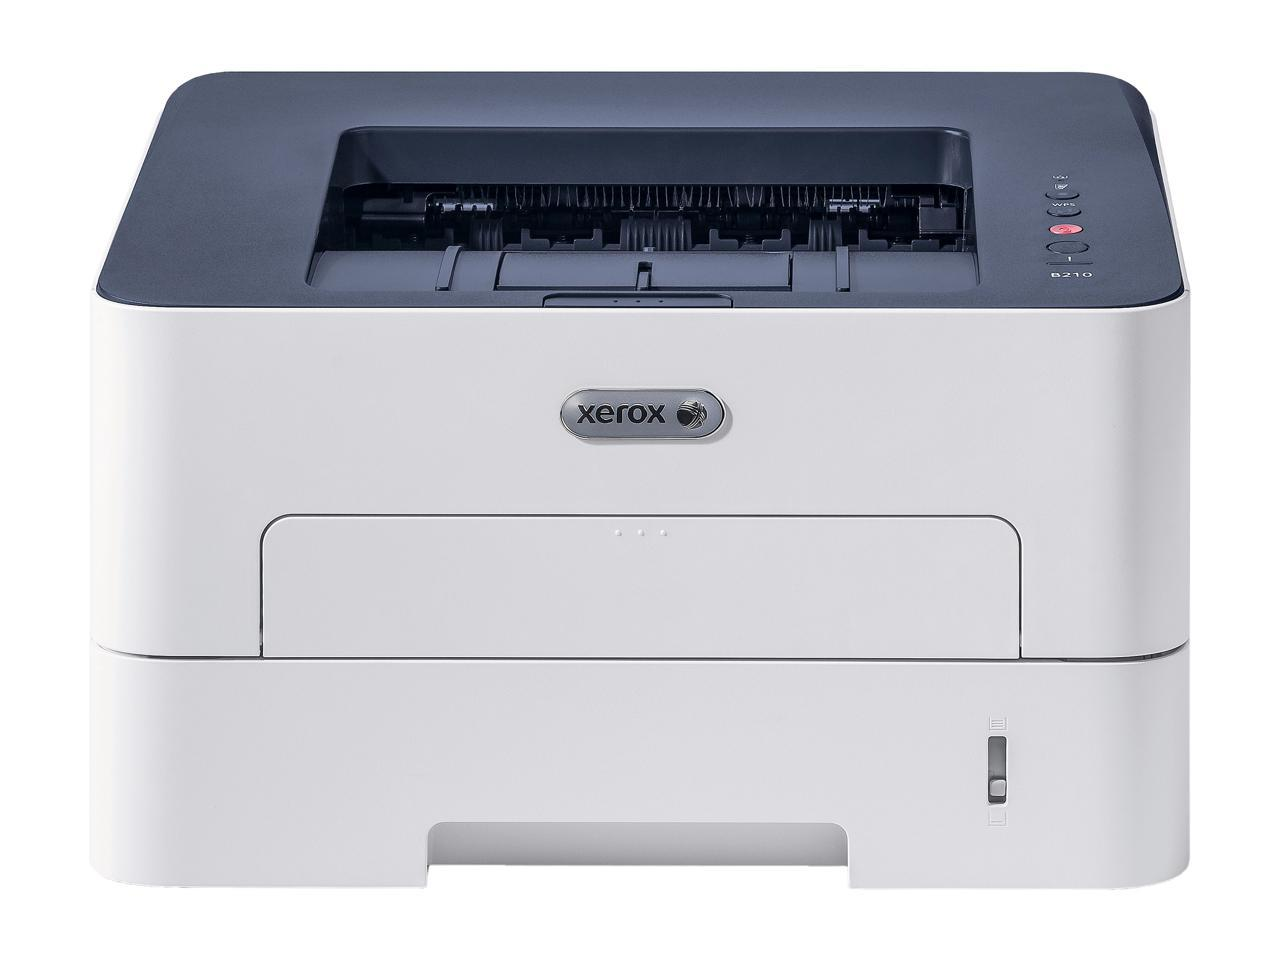 Xerox B210/DNI USB/Ethernet and Wireless Printer